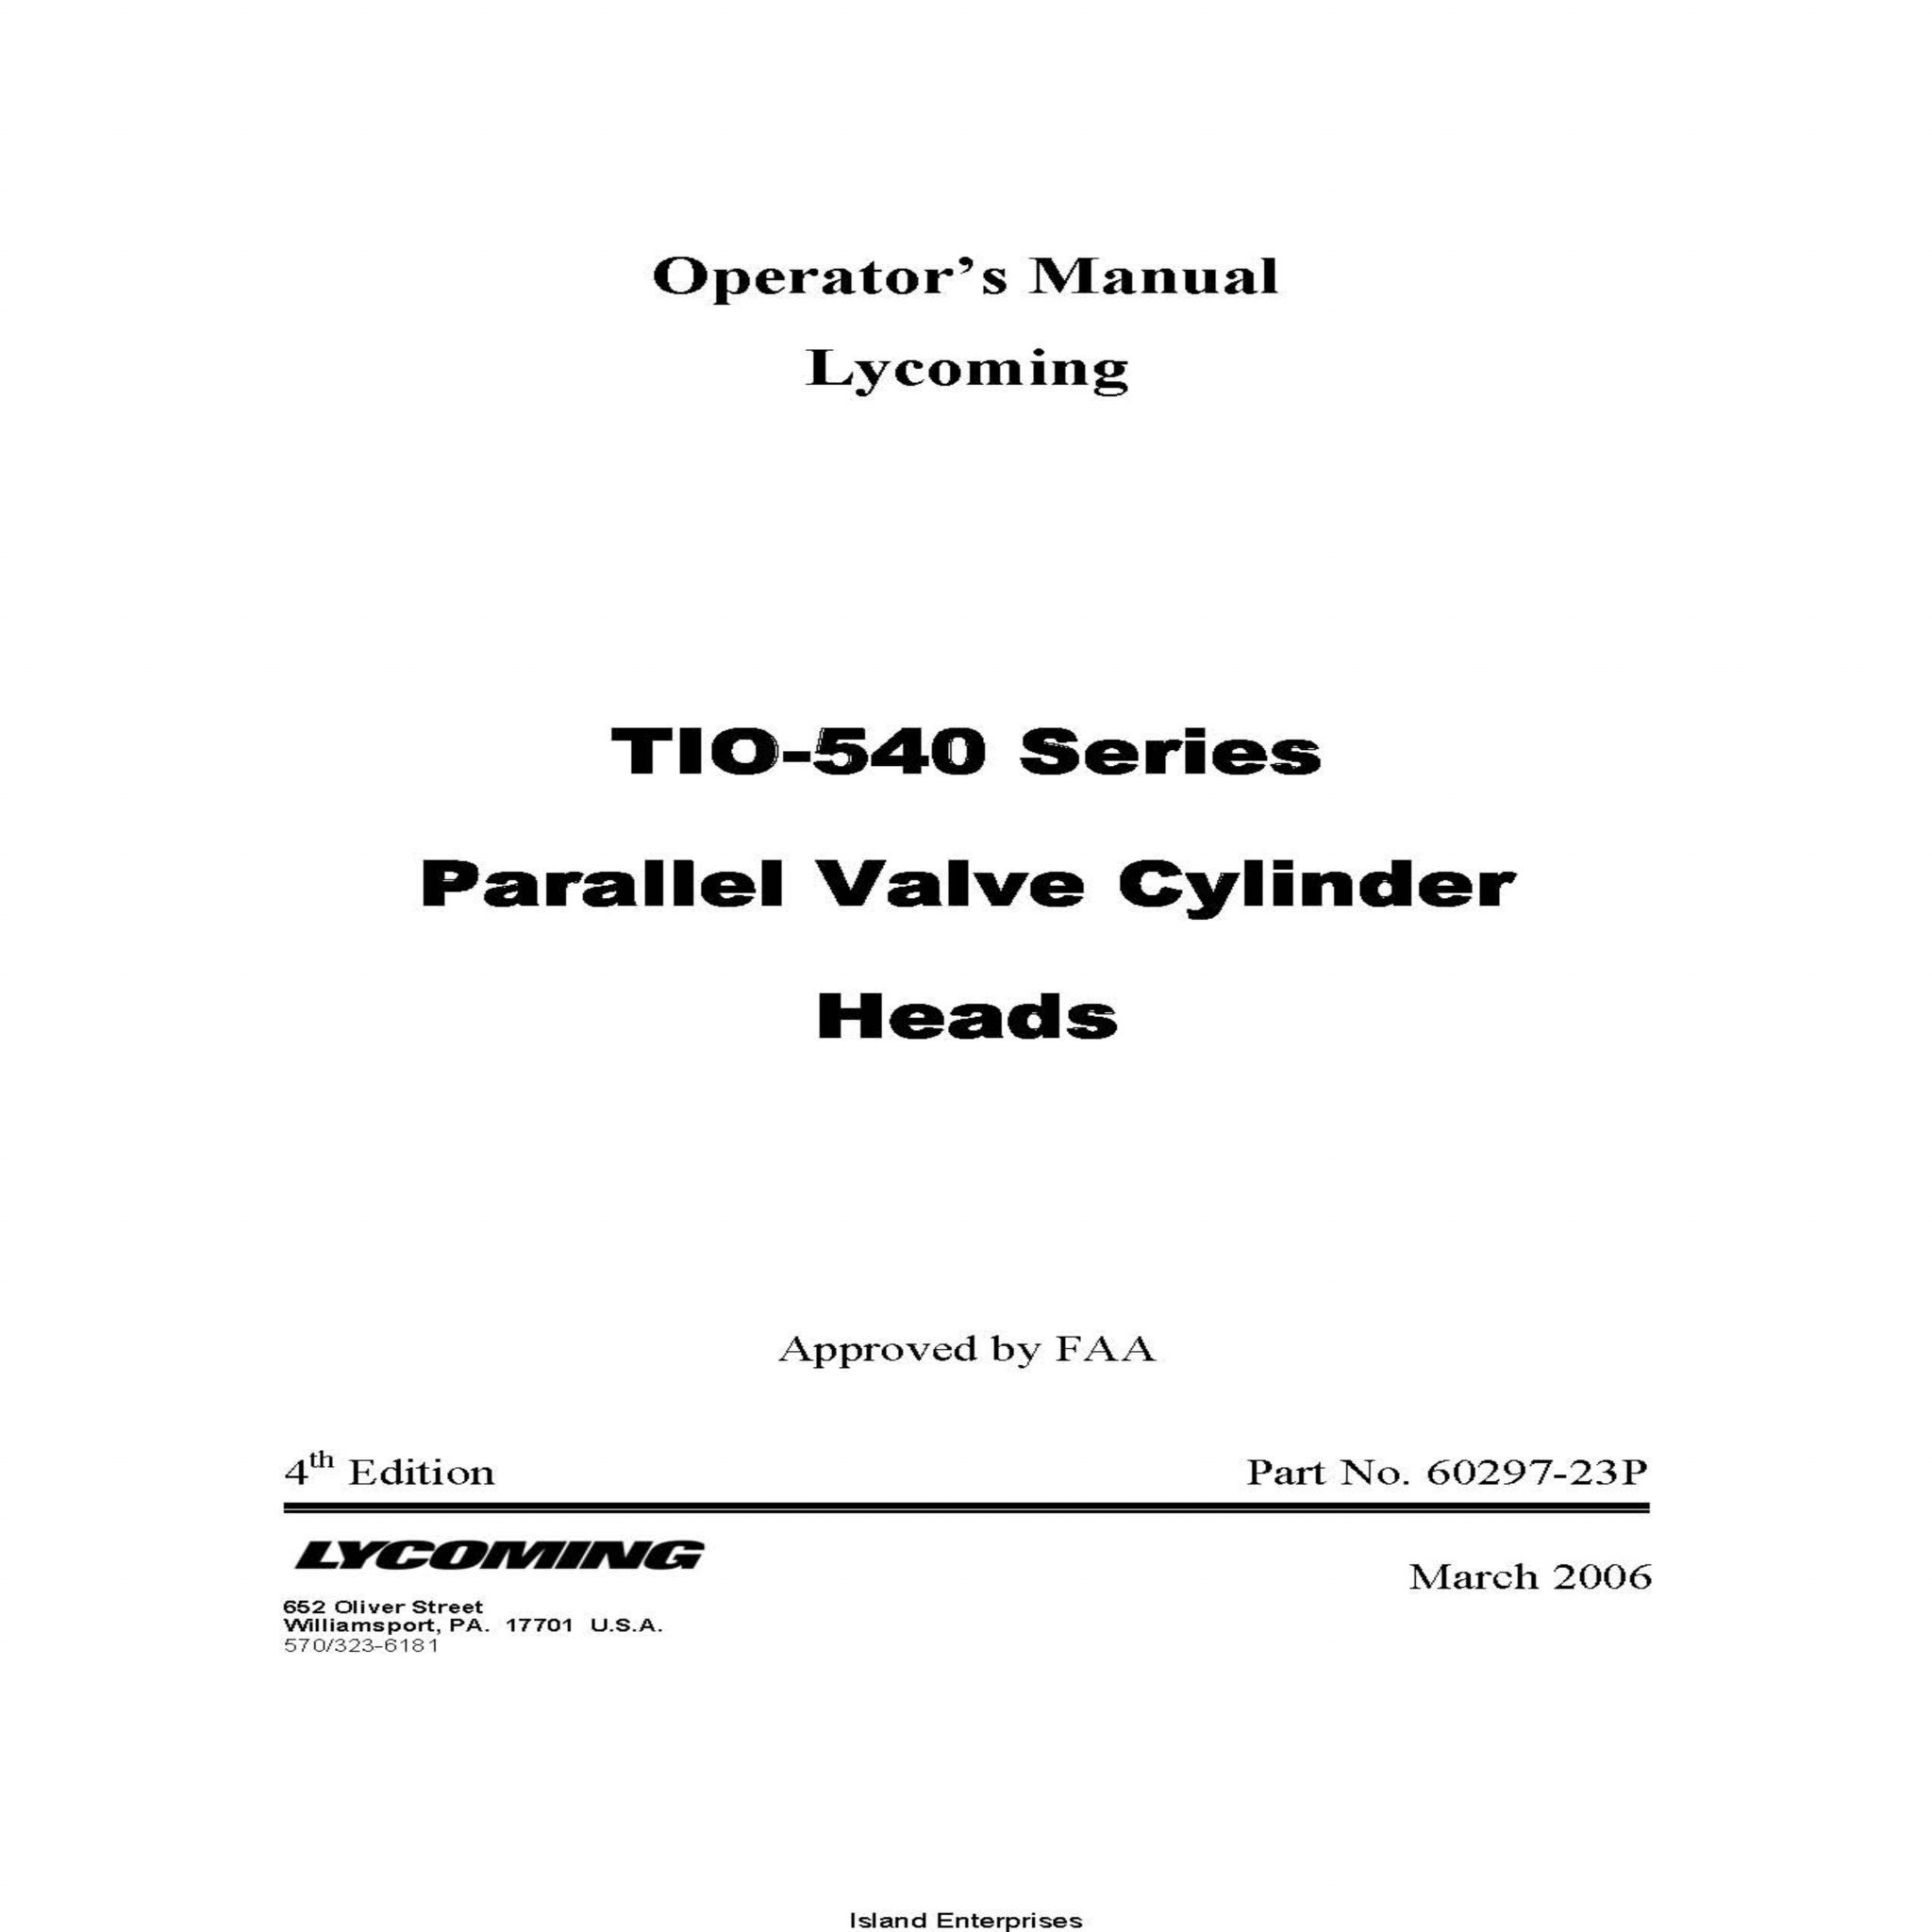 Lycoming Operator's Manual TIO-540 Series Parallel Valve